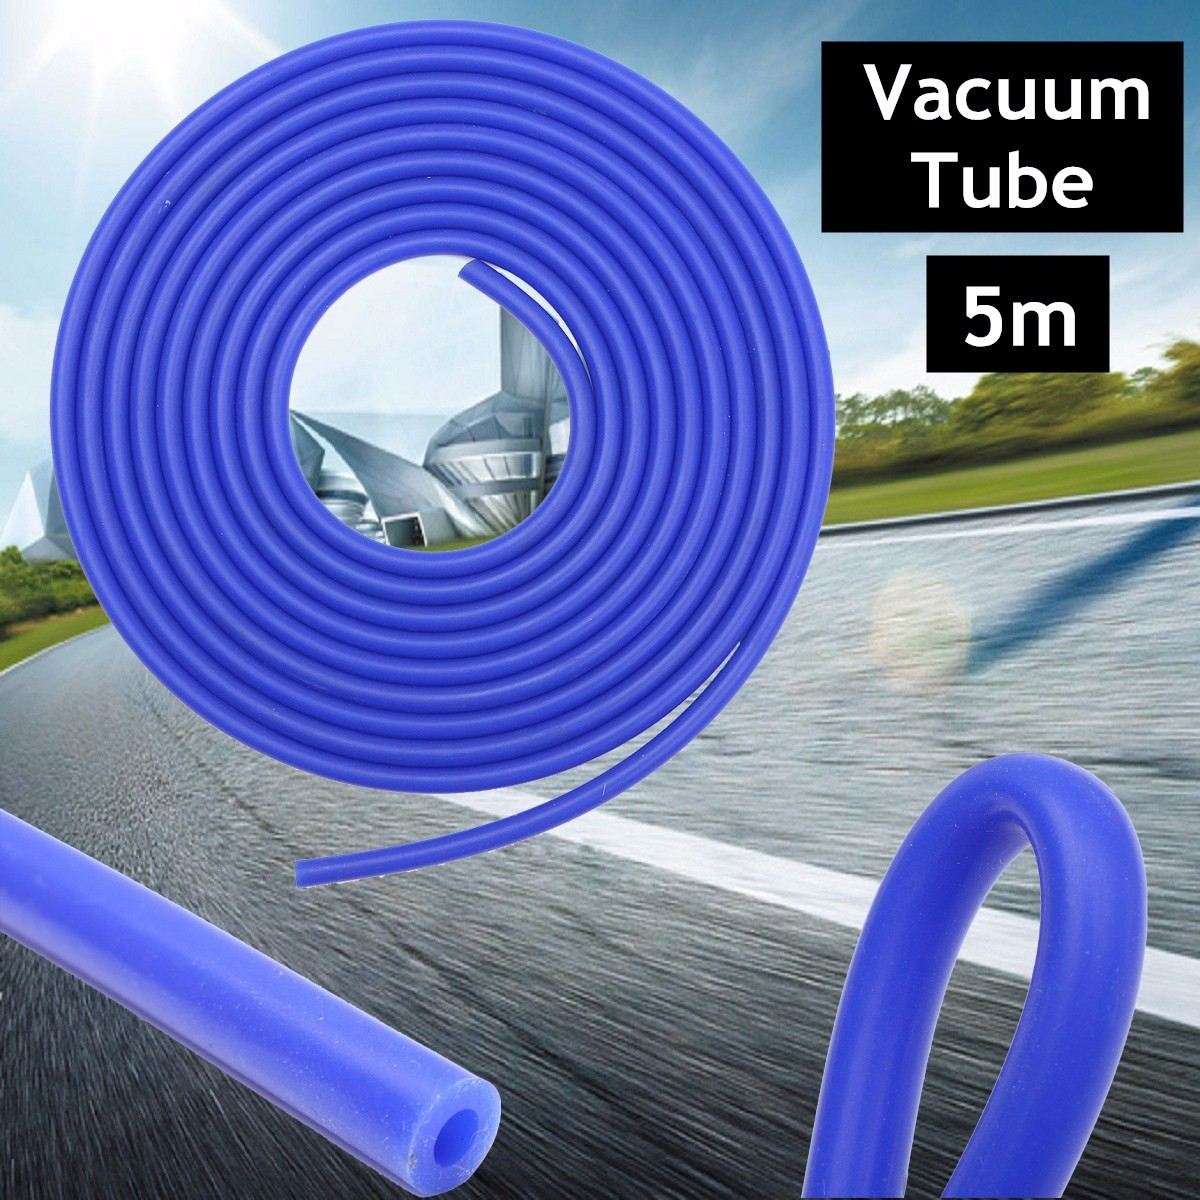 Auto Car Vacuum Silicone Hose Racing Line Pipe Tube Car-styling Blue 5M 4mm Silicone Vacuum Tube Hose Silicone Tubing 16.4ft image